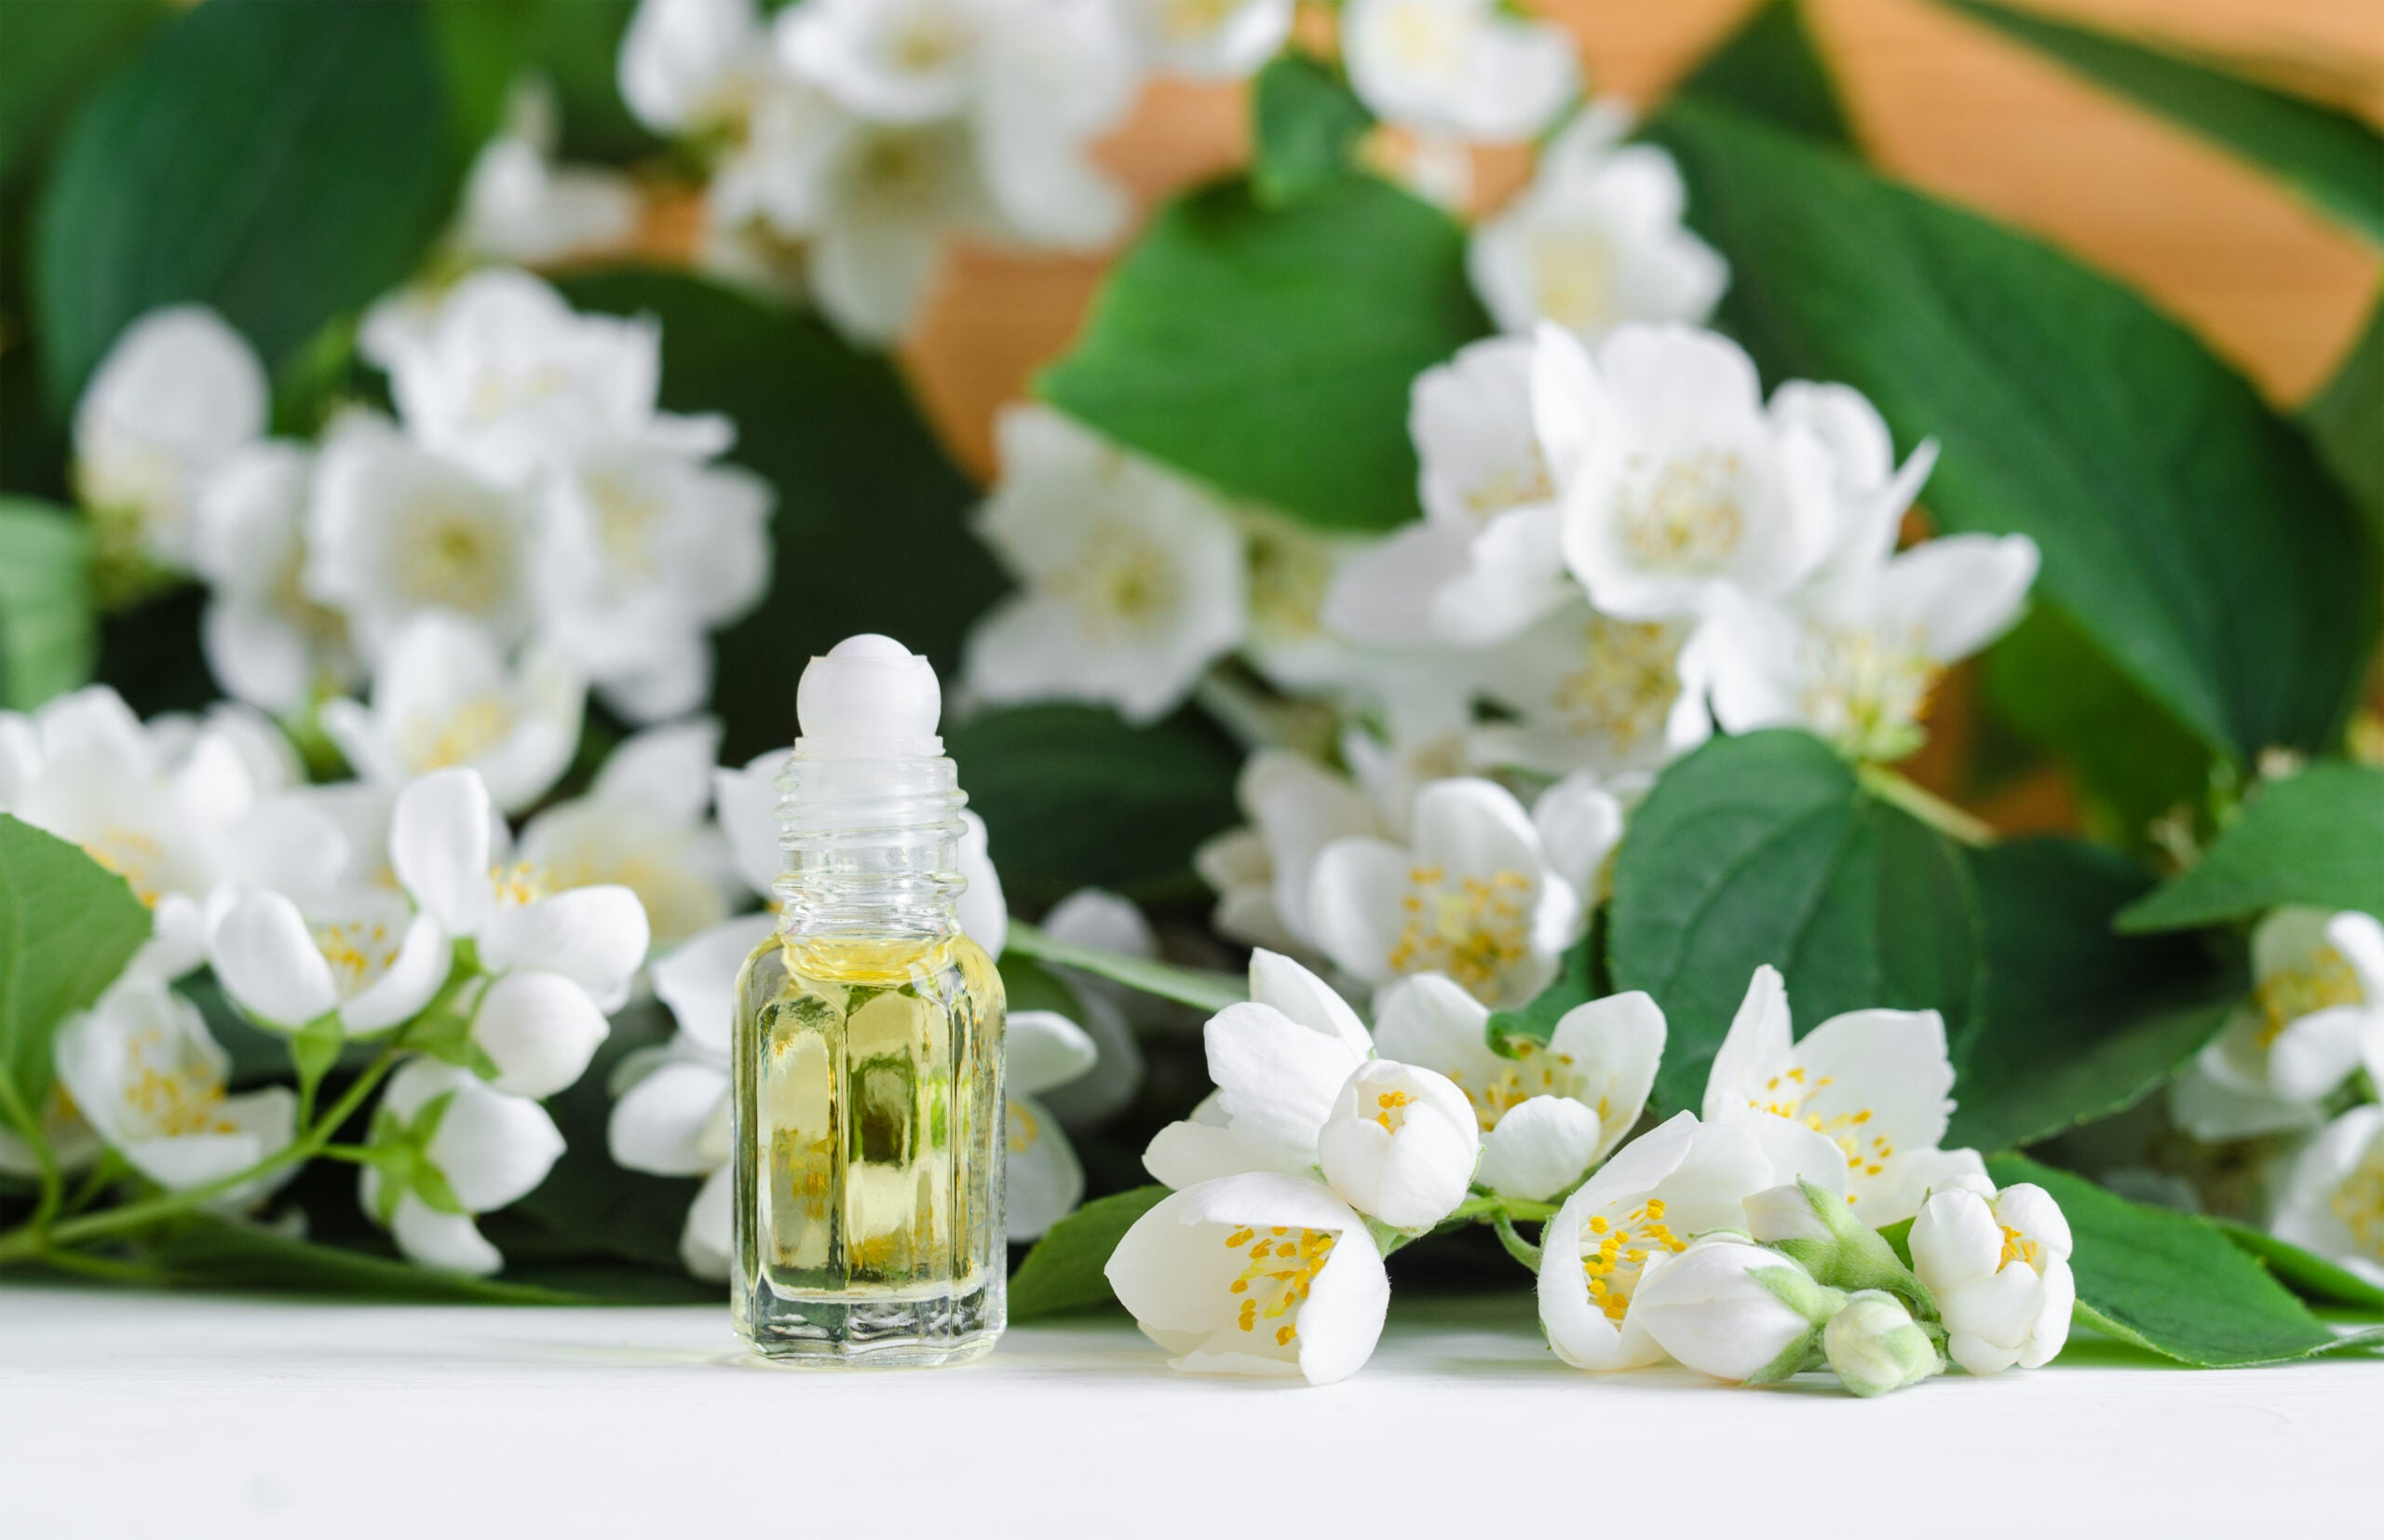 Small glass bottle with natural jasmine roll on perfume oil. Jasmine blossom flowers background. Copy space.